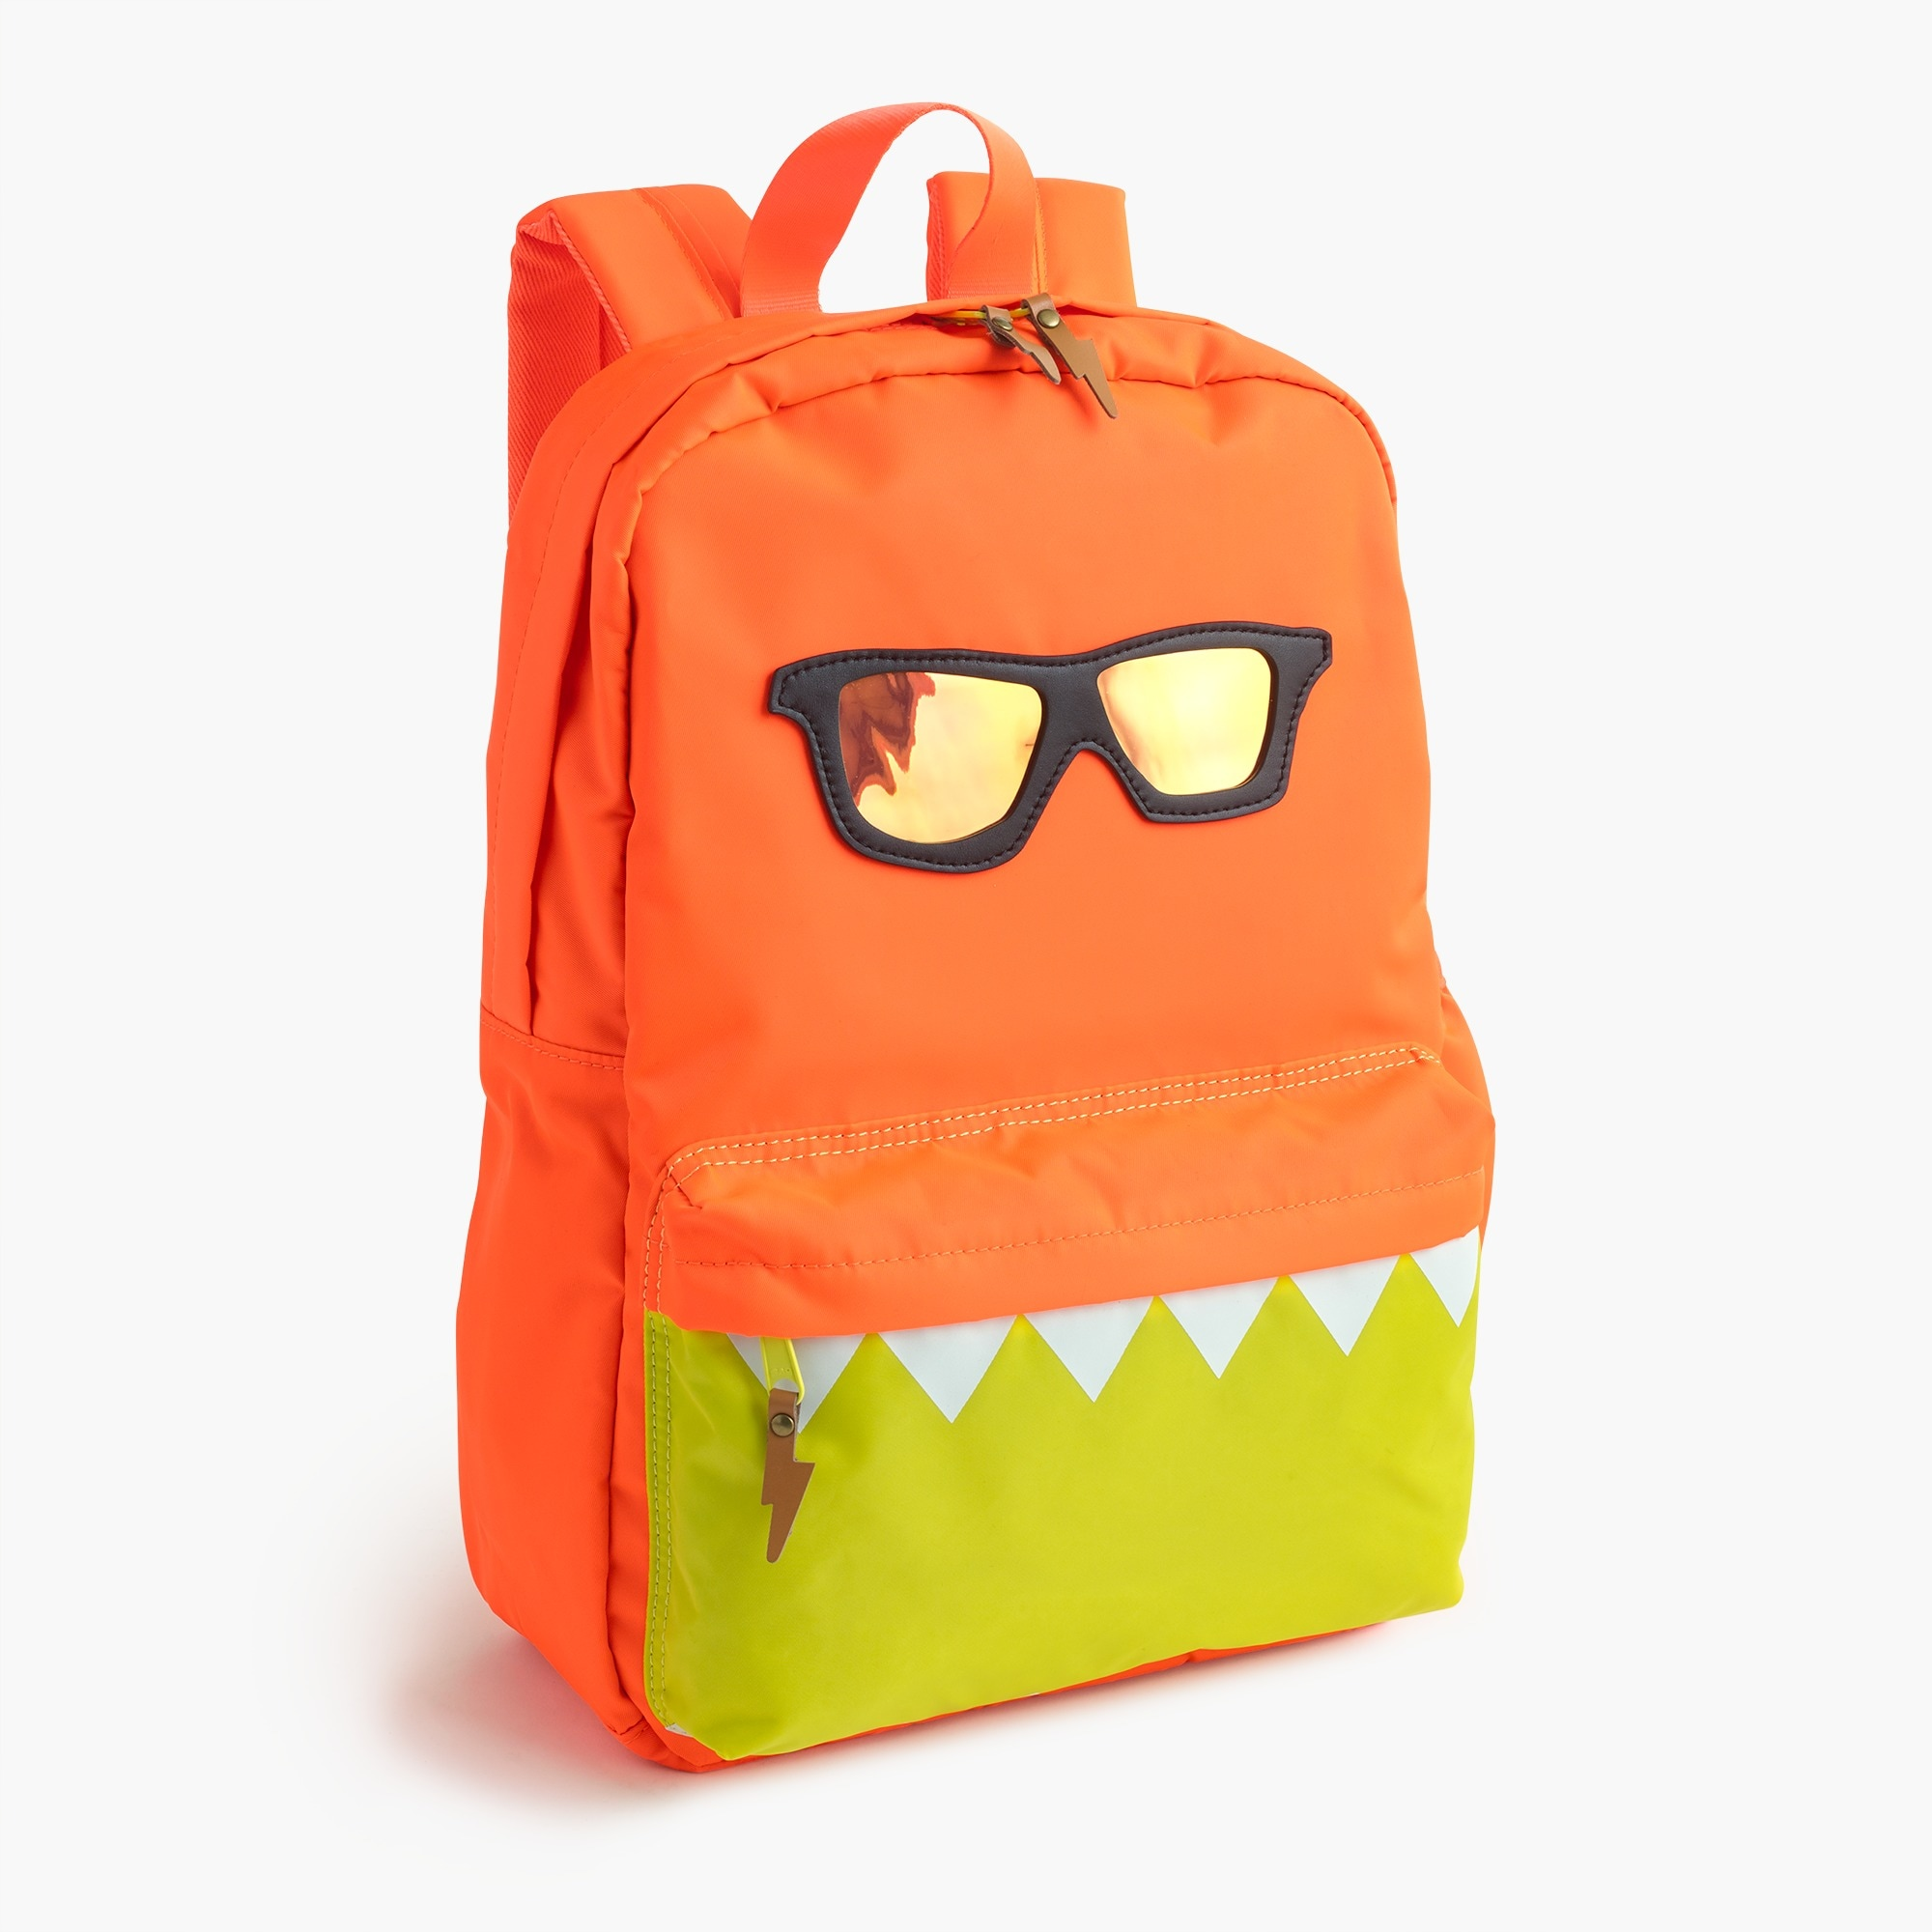 max the monster boys' backpack - boys' accessories